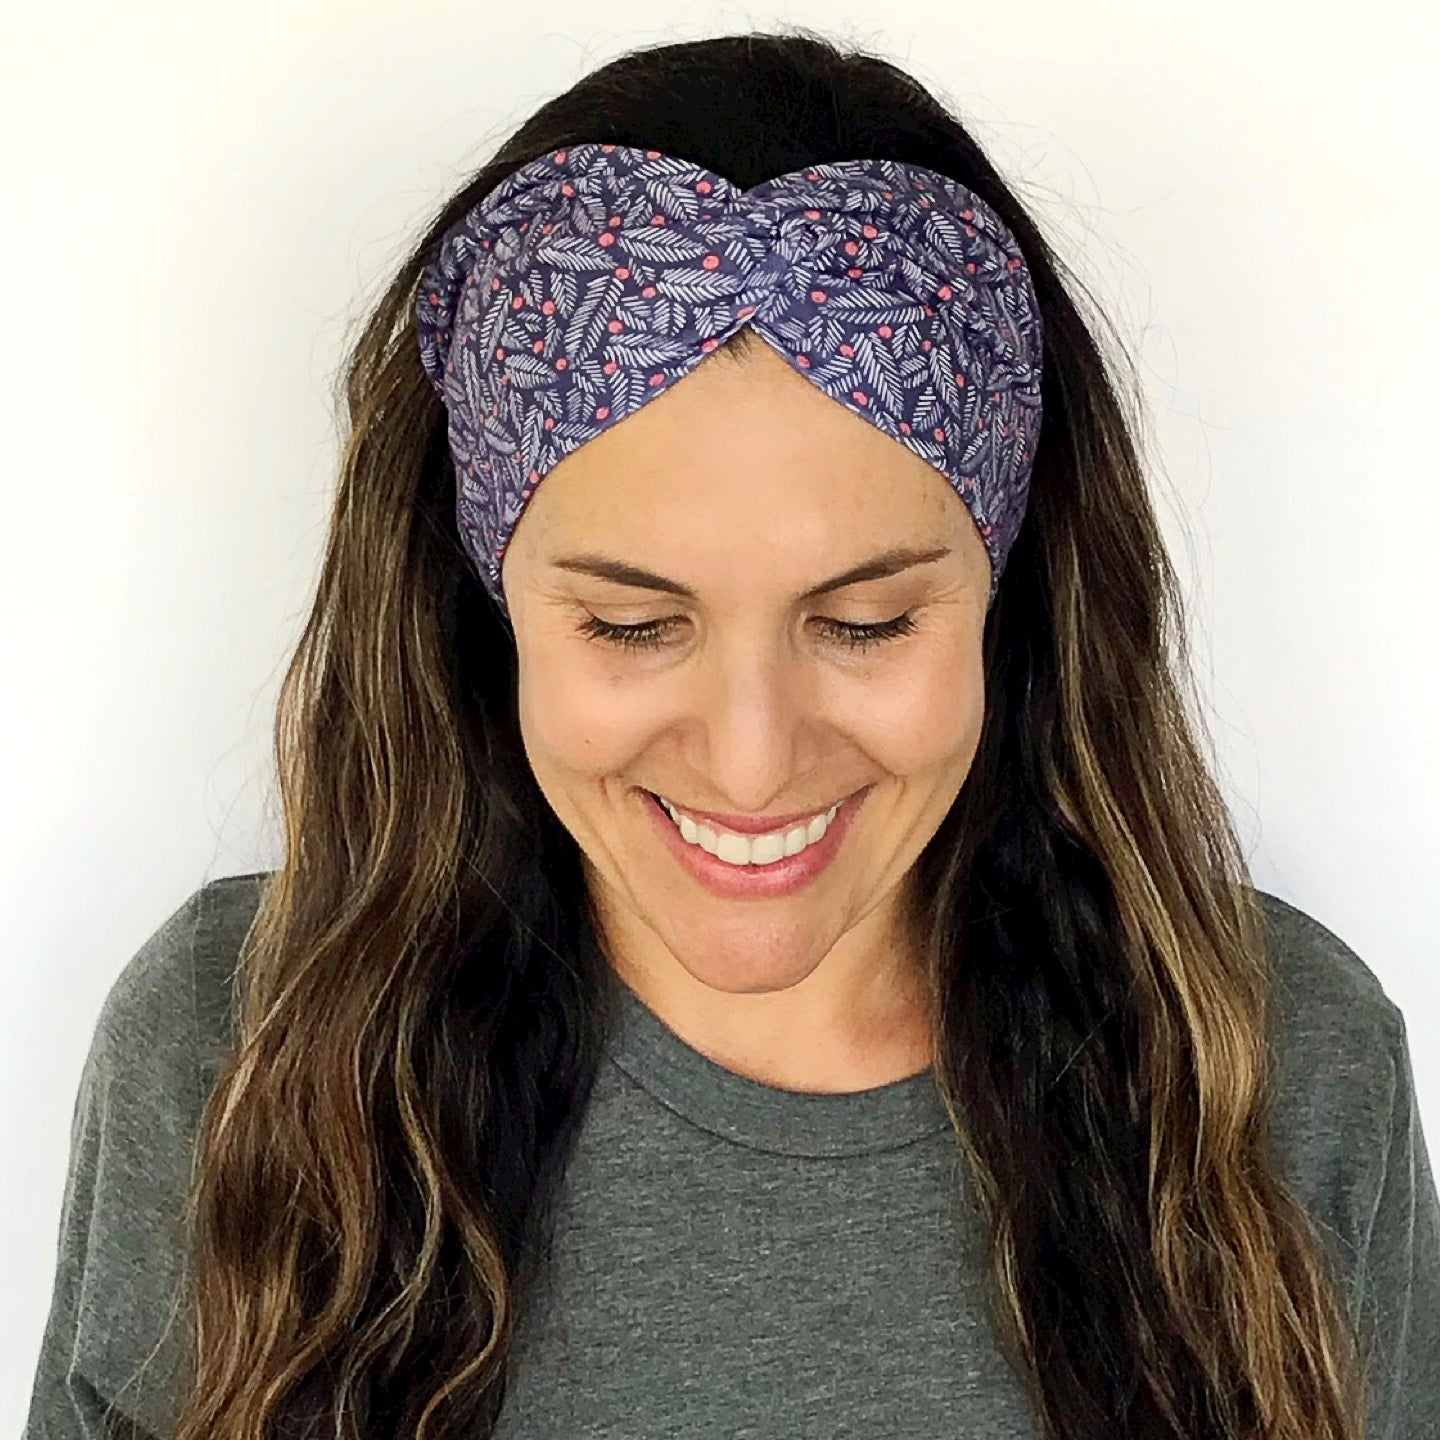 Holly Jolly Twisty Turban Headband